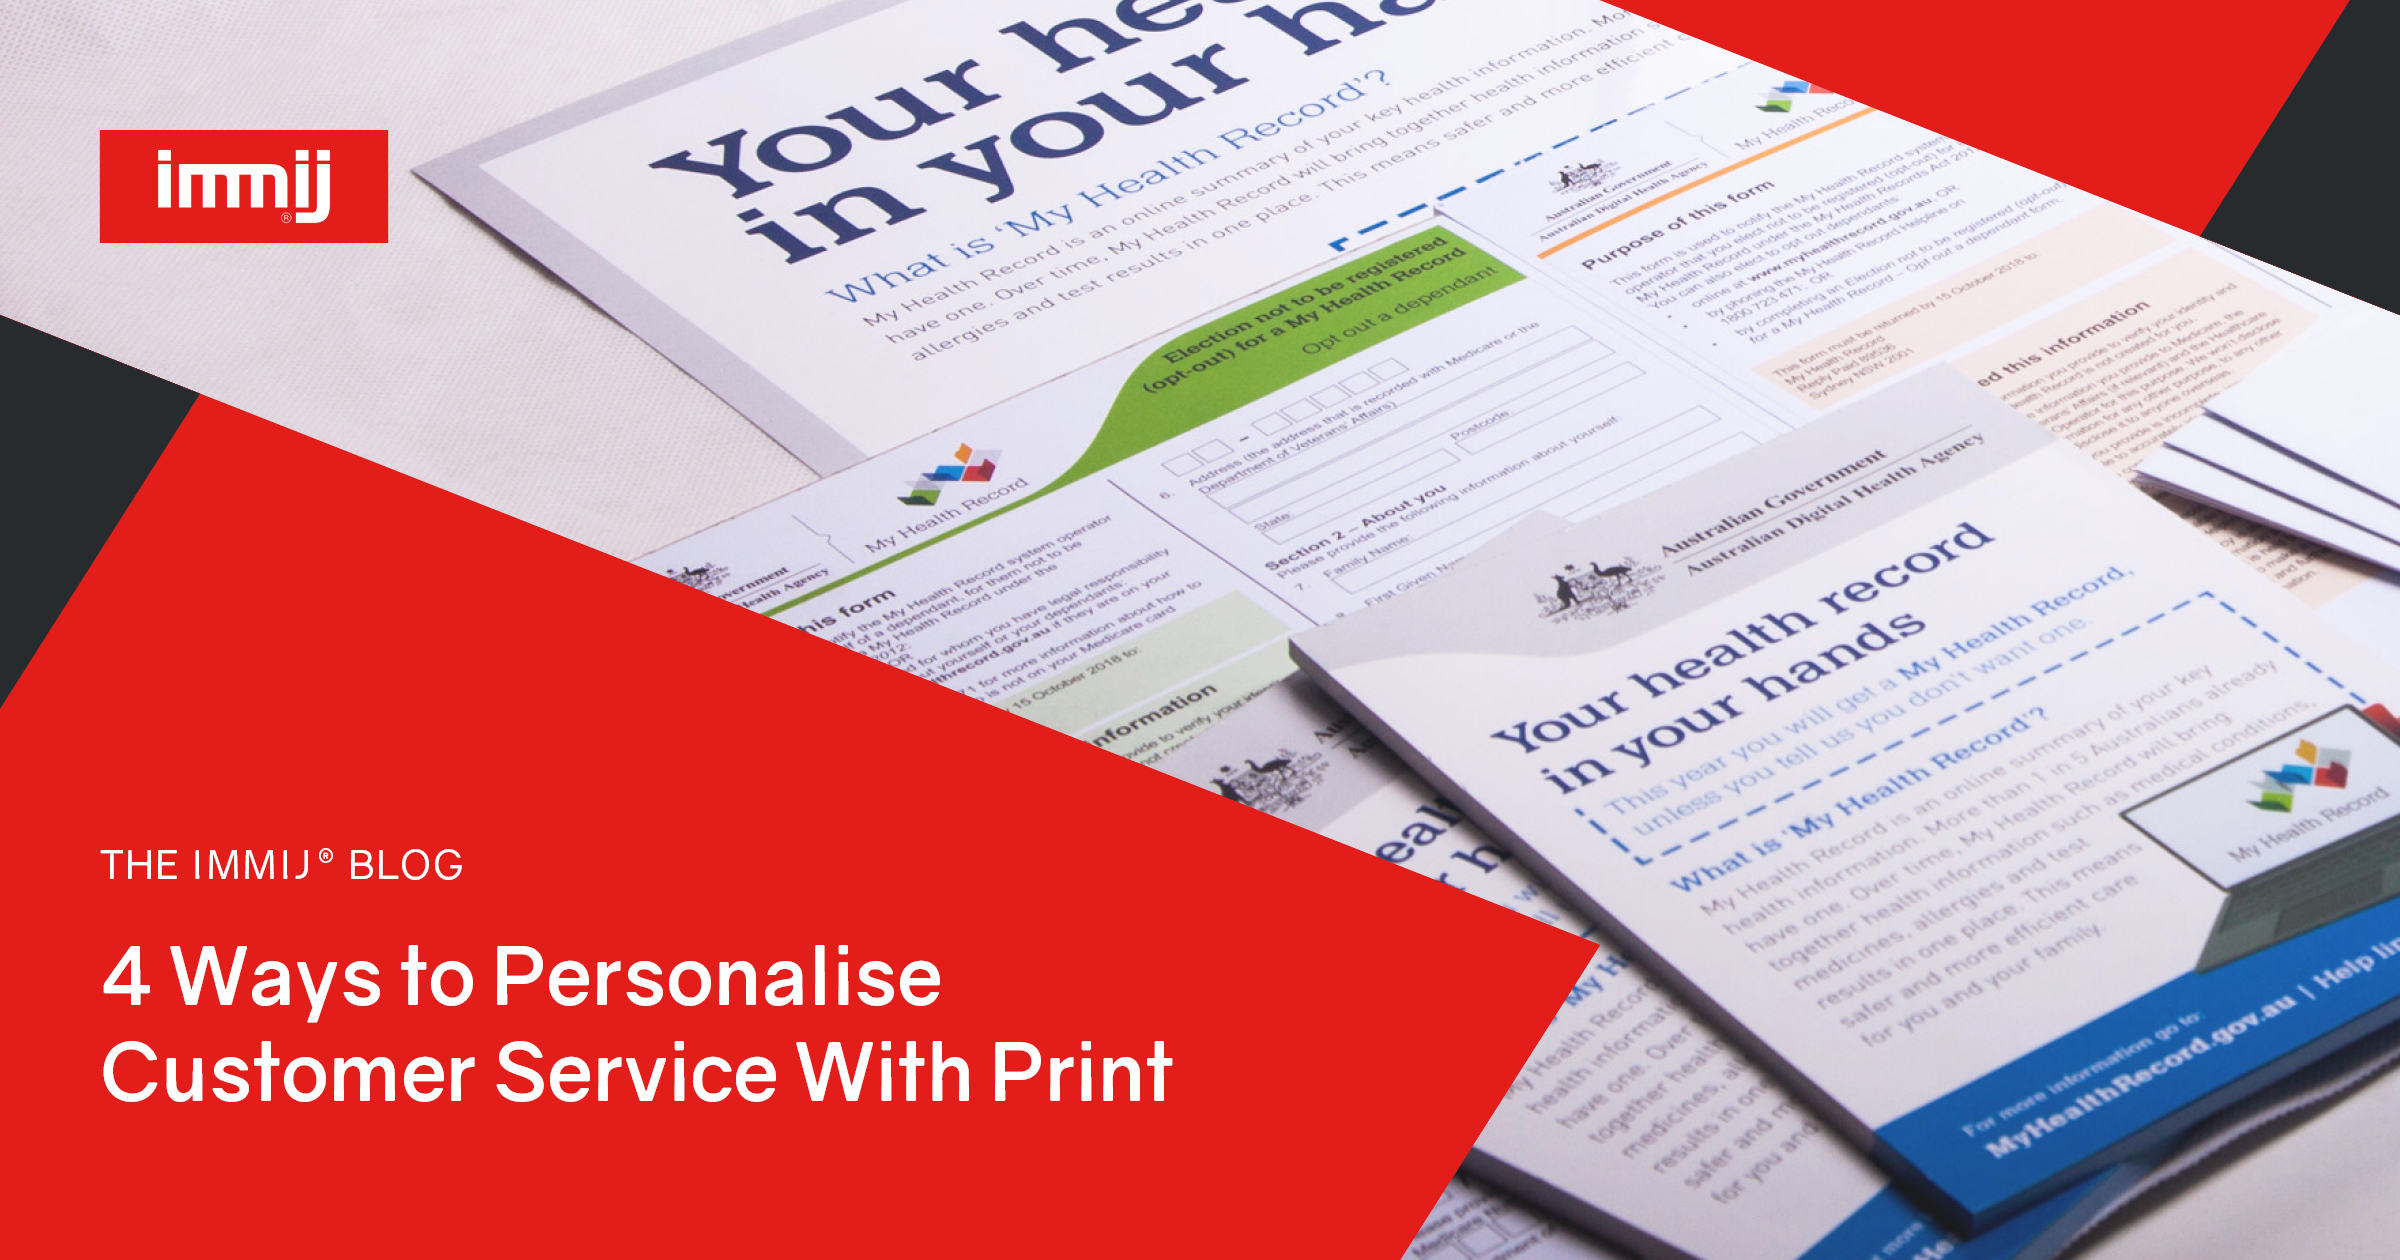 4 Ways to Personalise Customer Service with Print - Immij - Printing